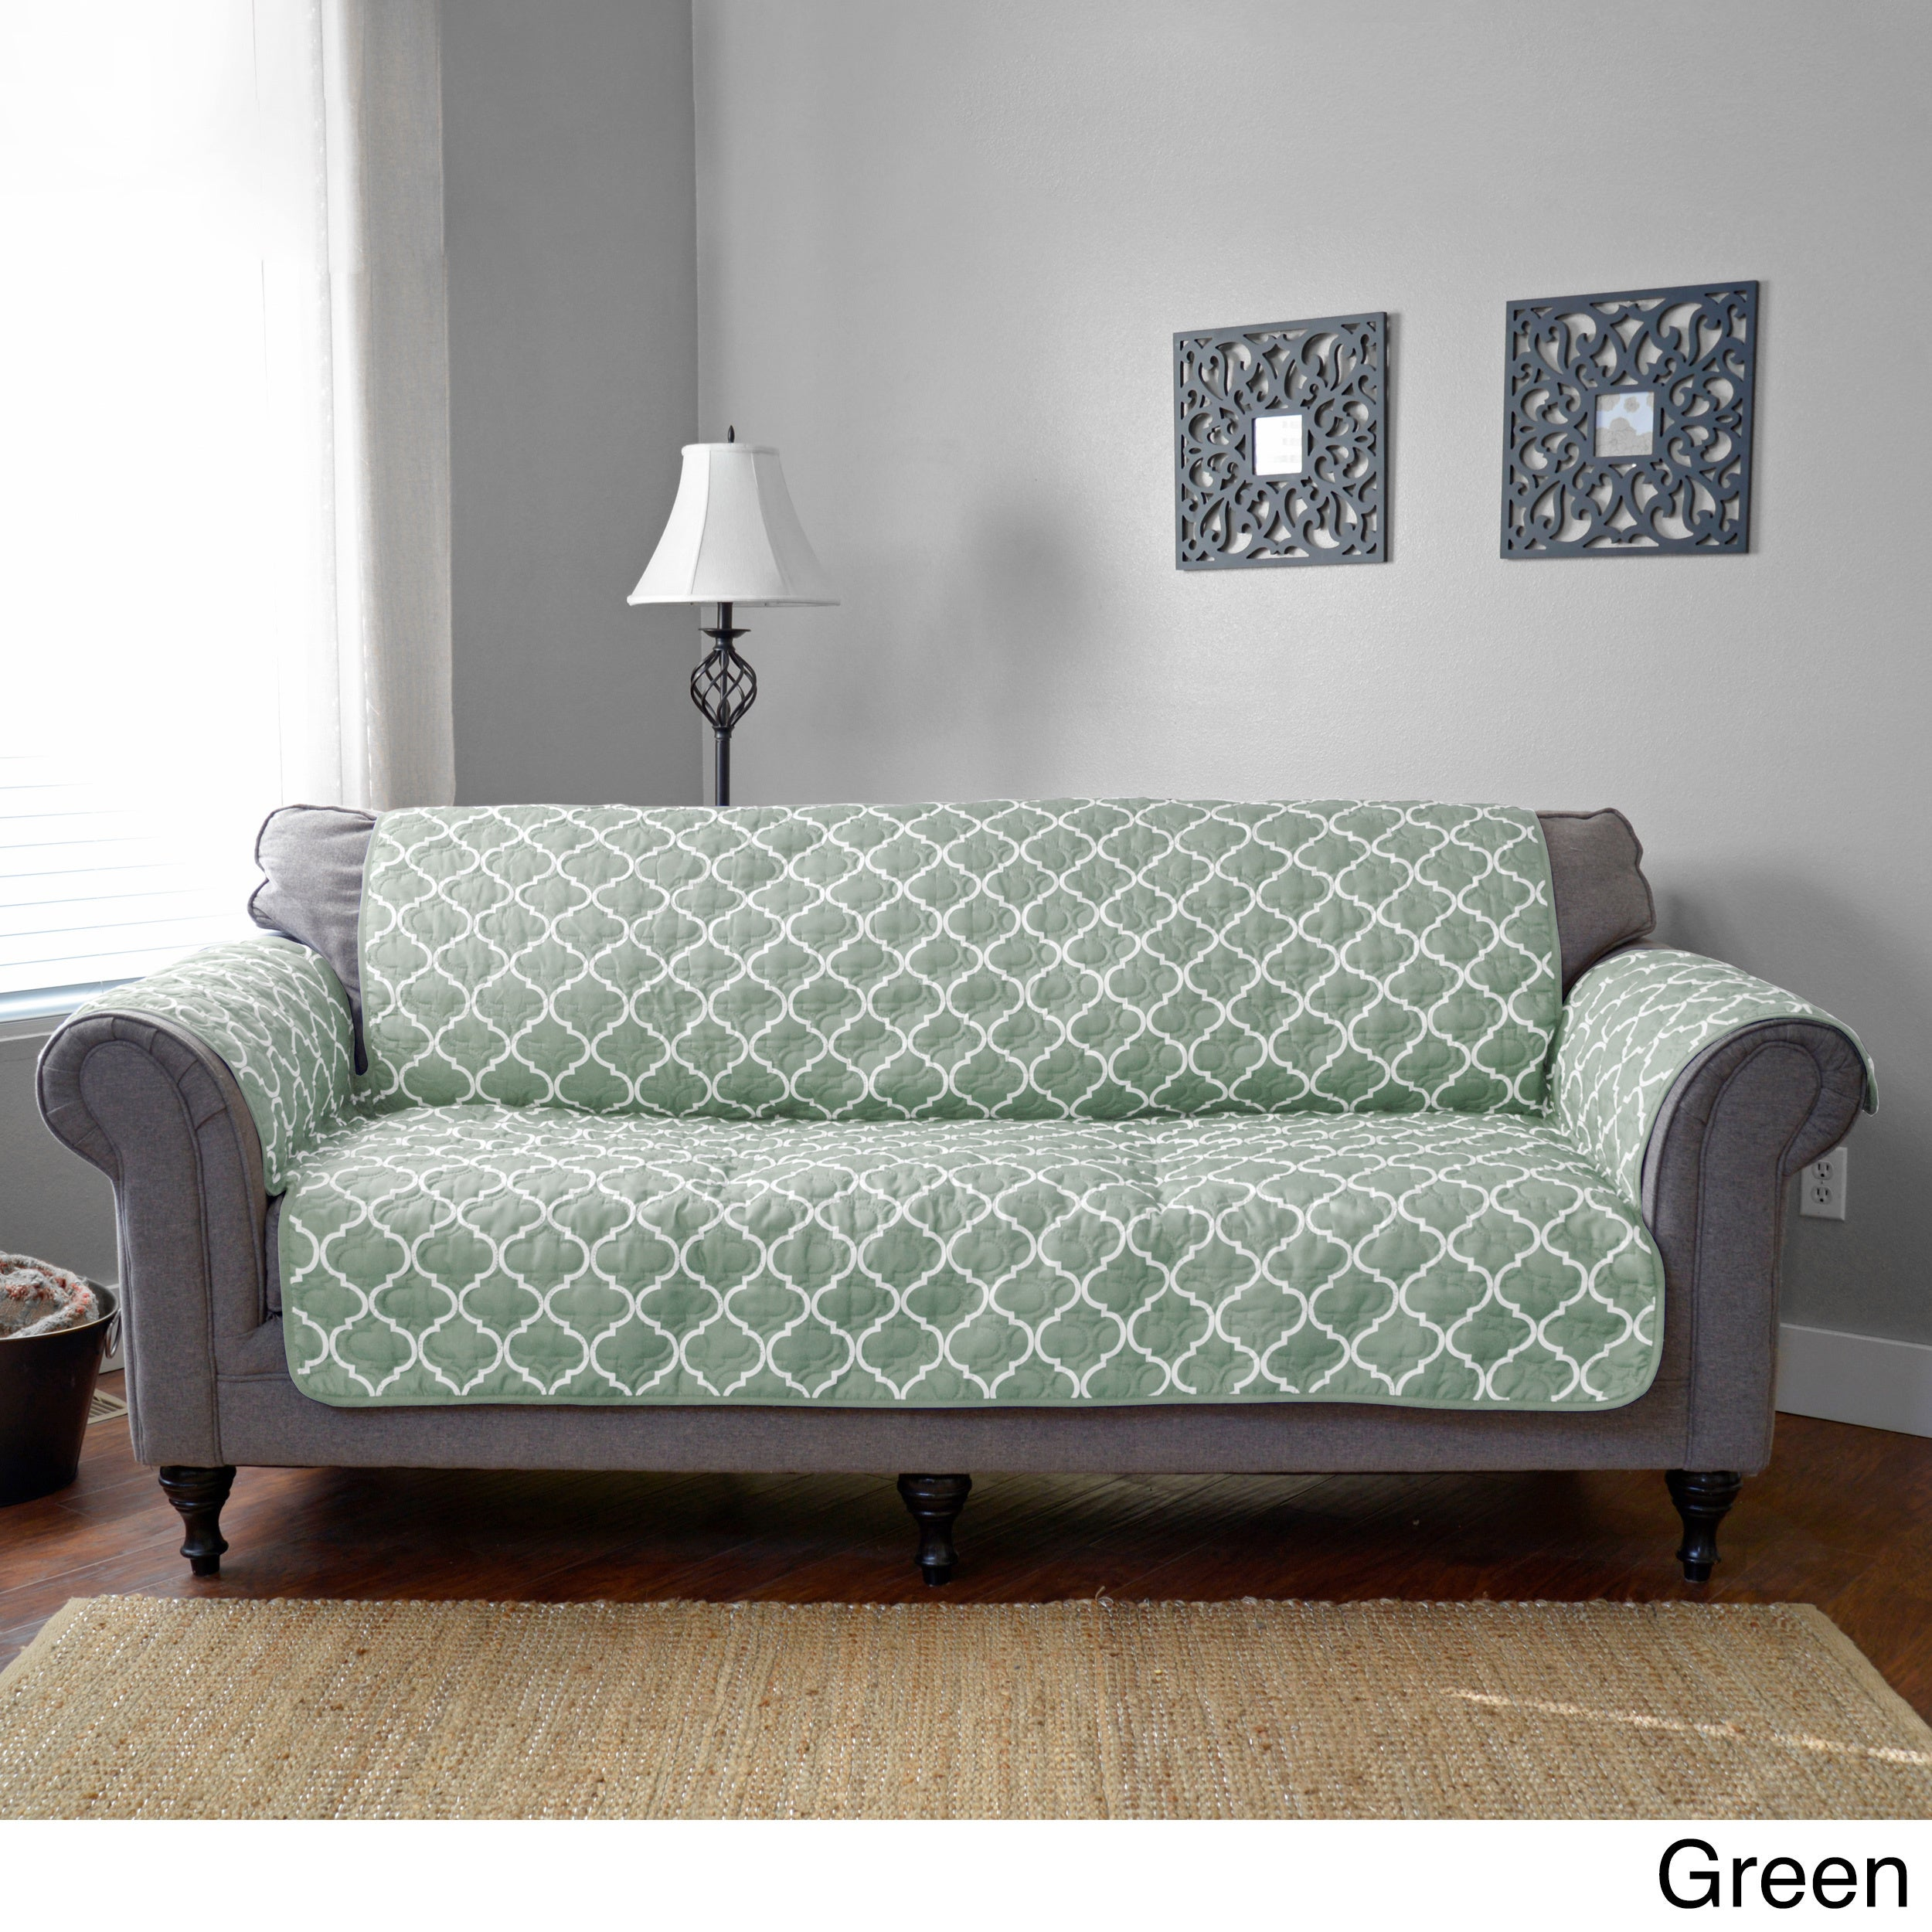 Journee Home Jovannie Reversible Printed Sofa Protector On Ships To Canada Ca 14356262